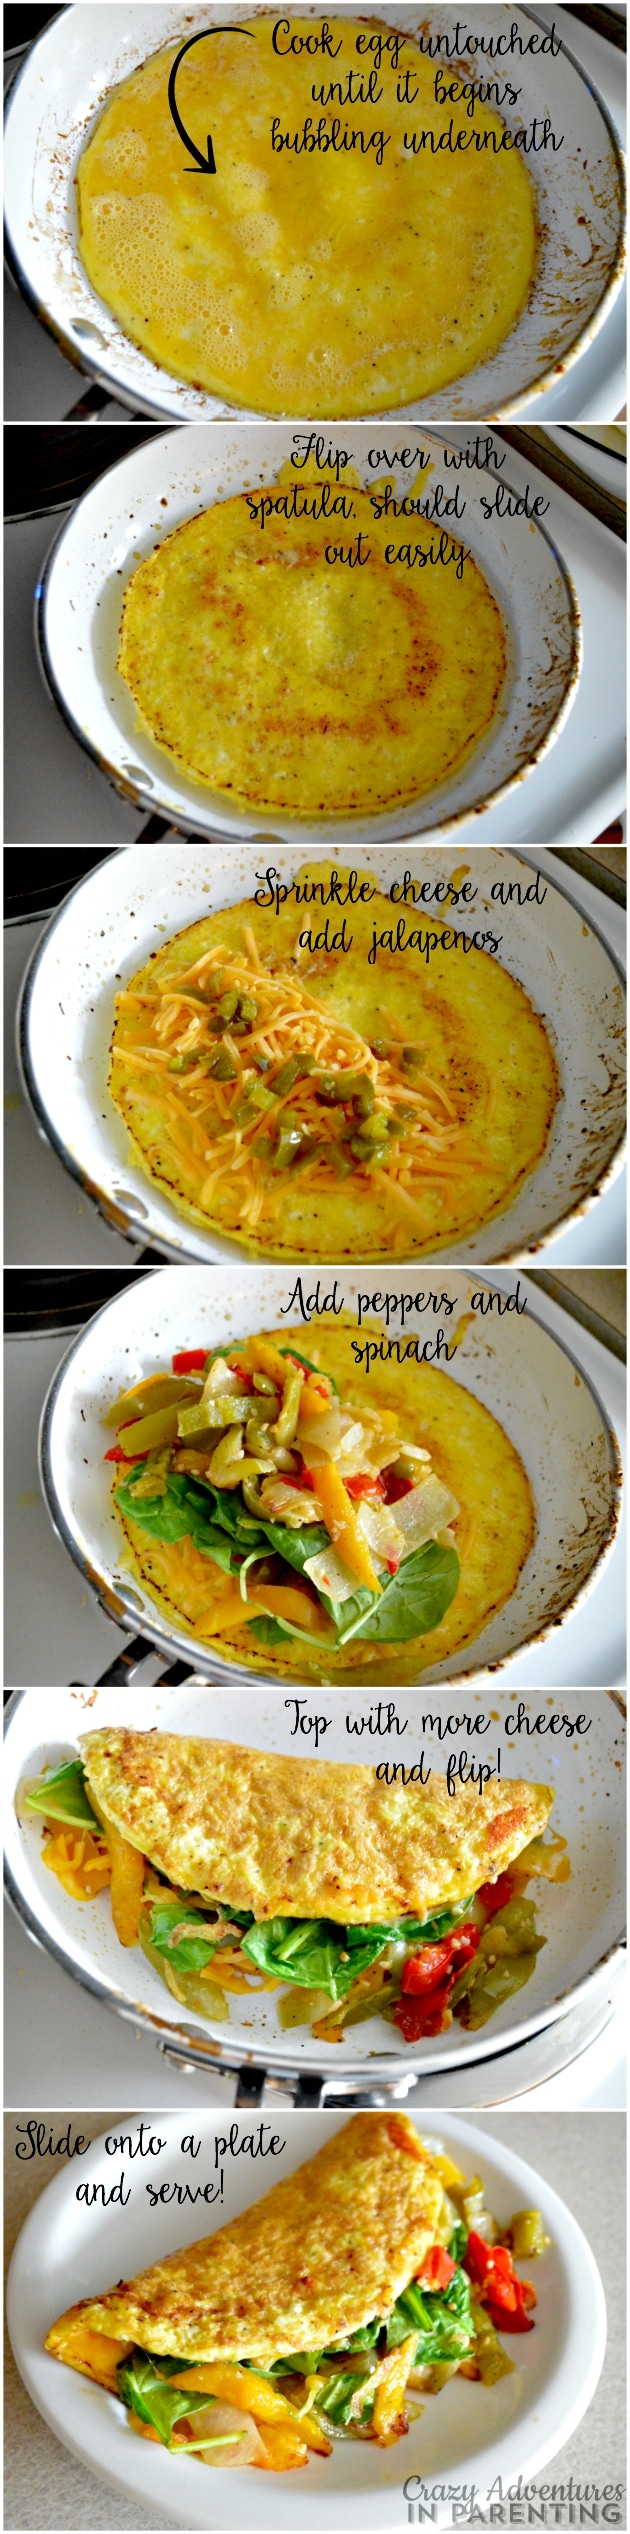 How to make a Spicy Pepper Omelet